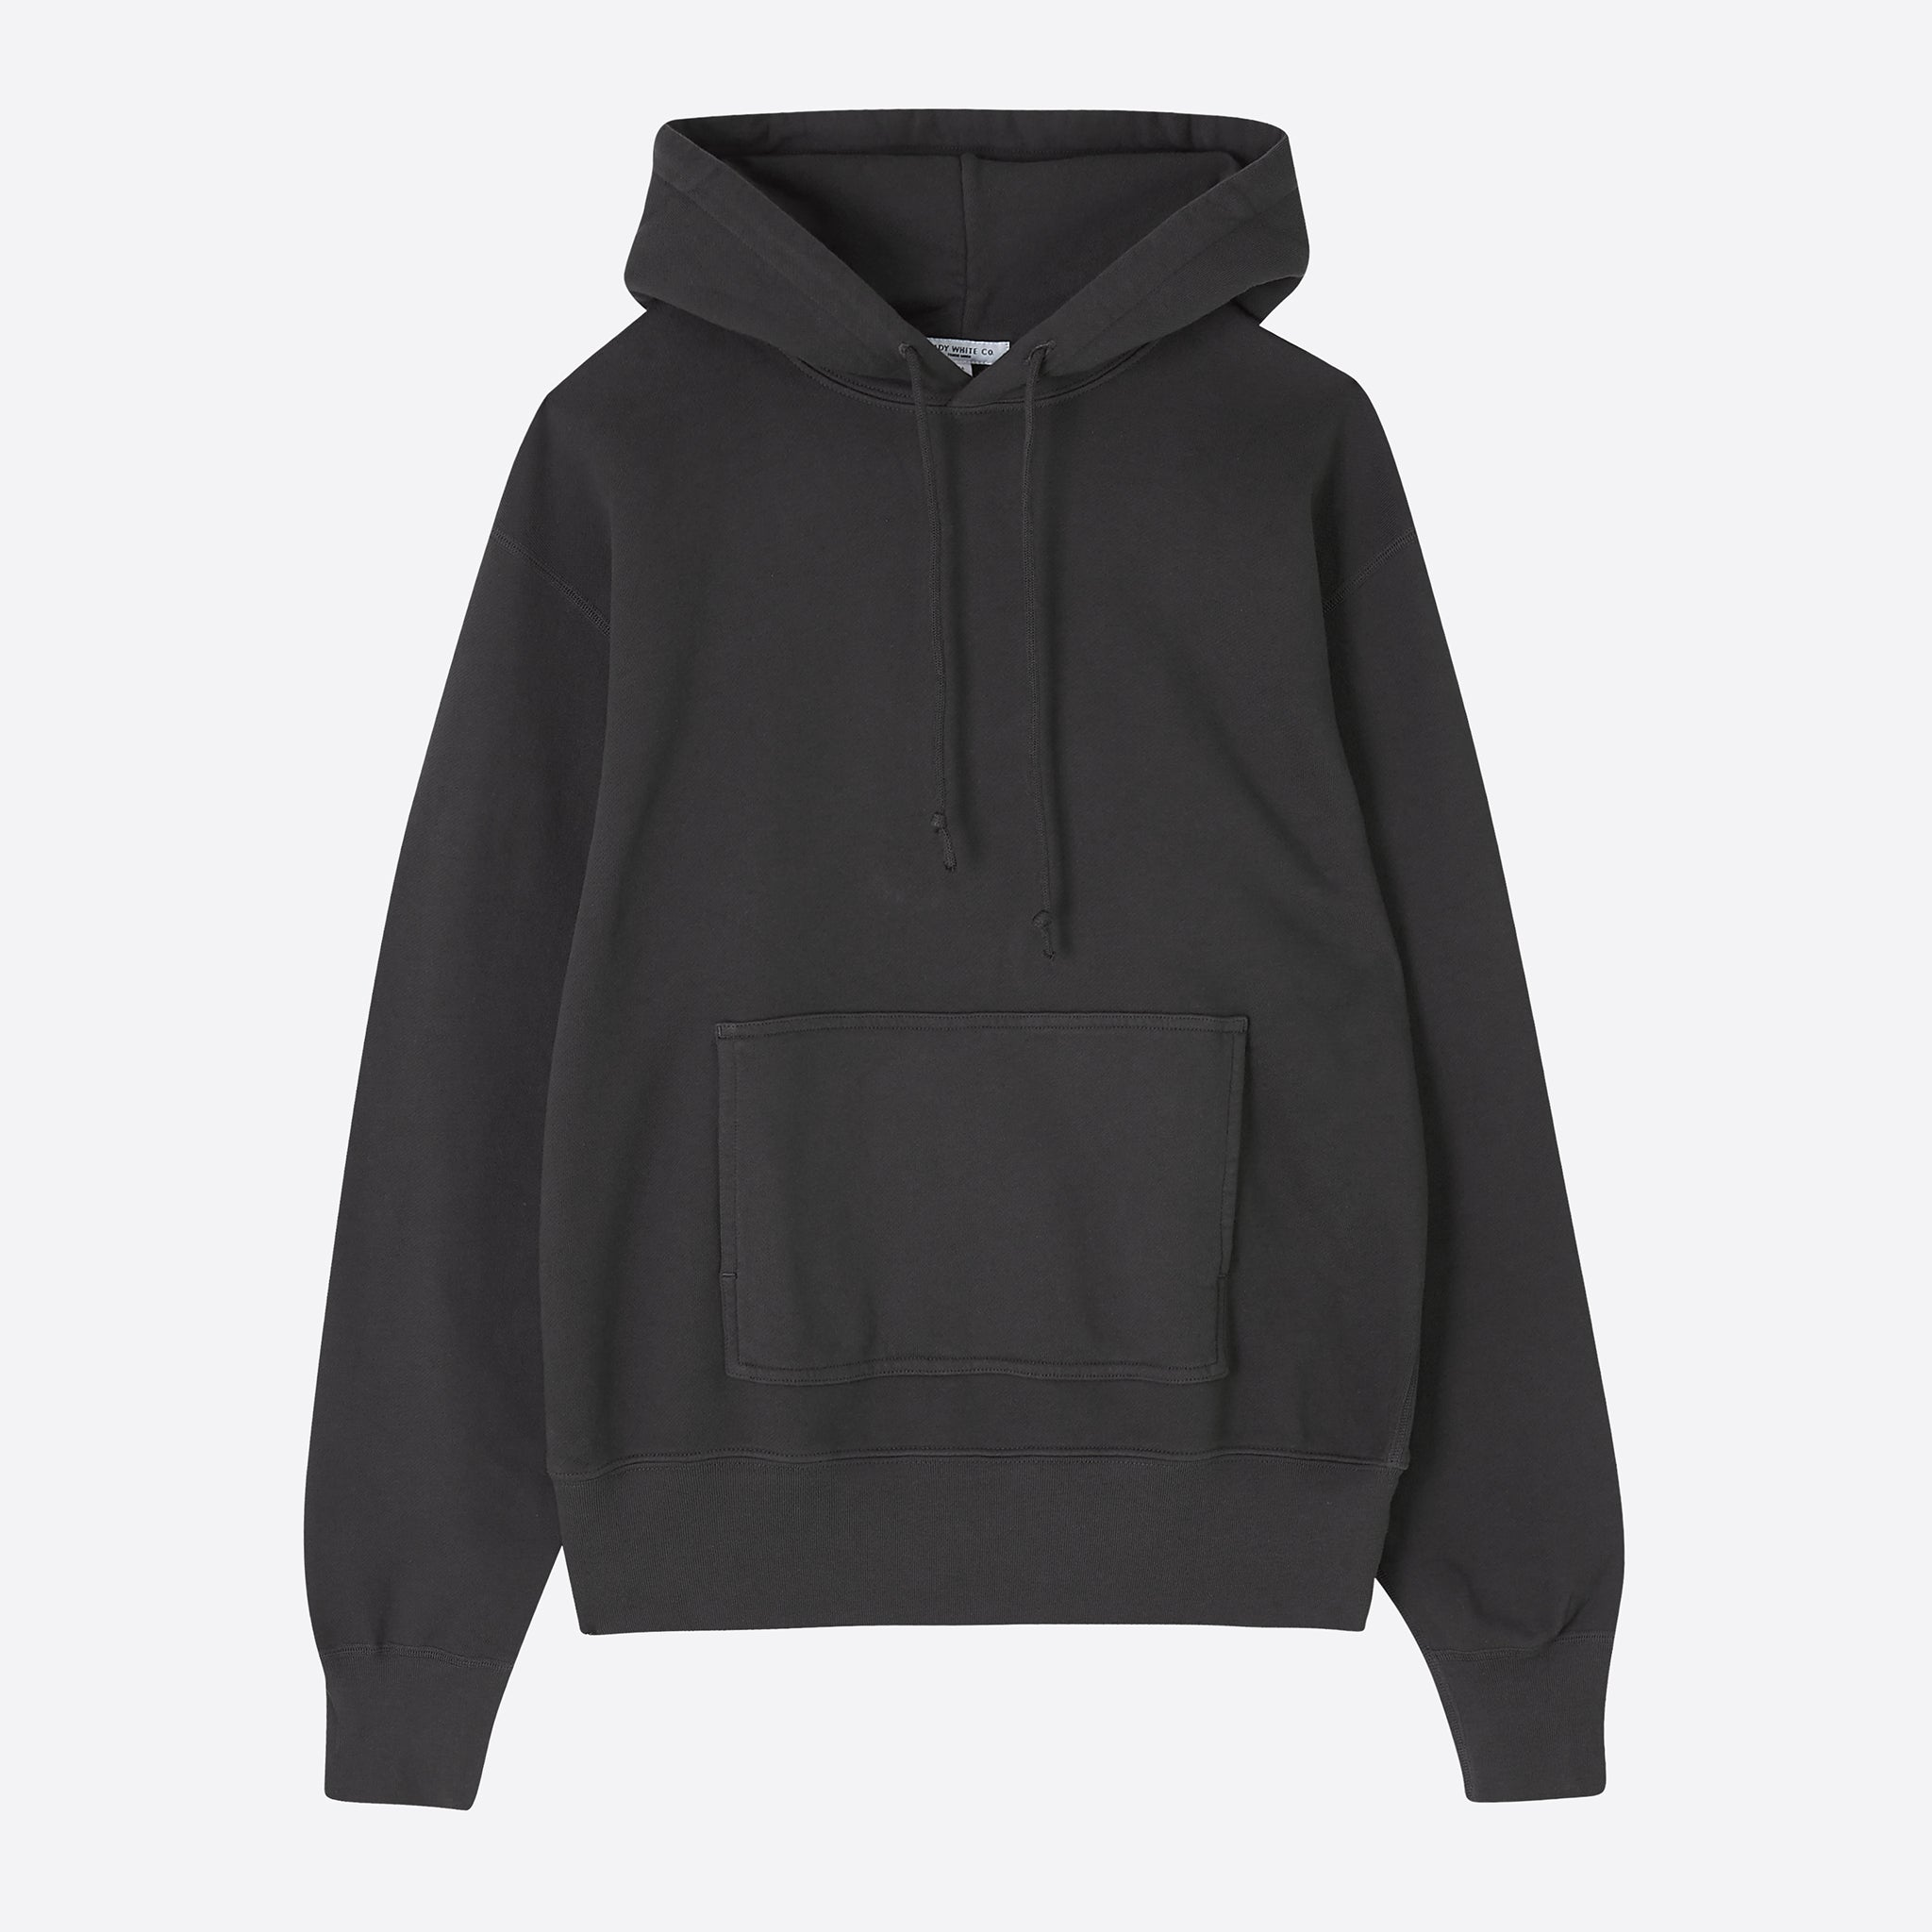 Lady White Co. Hoodie in Faded Black